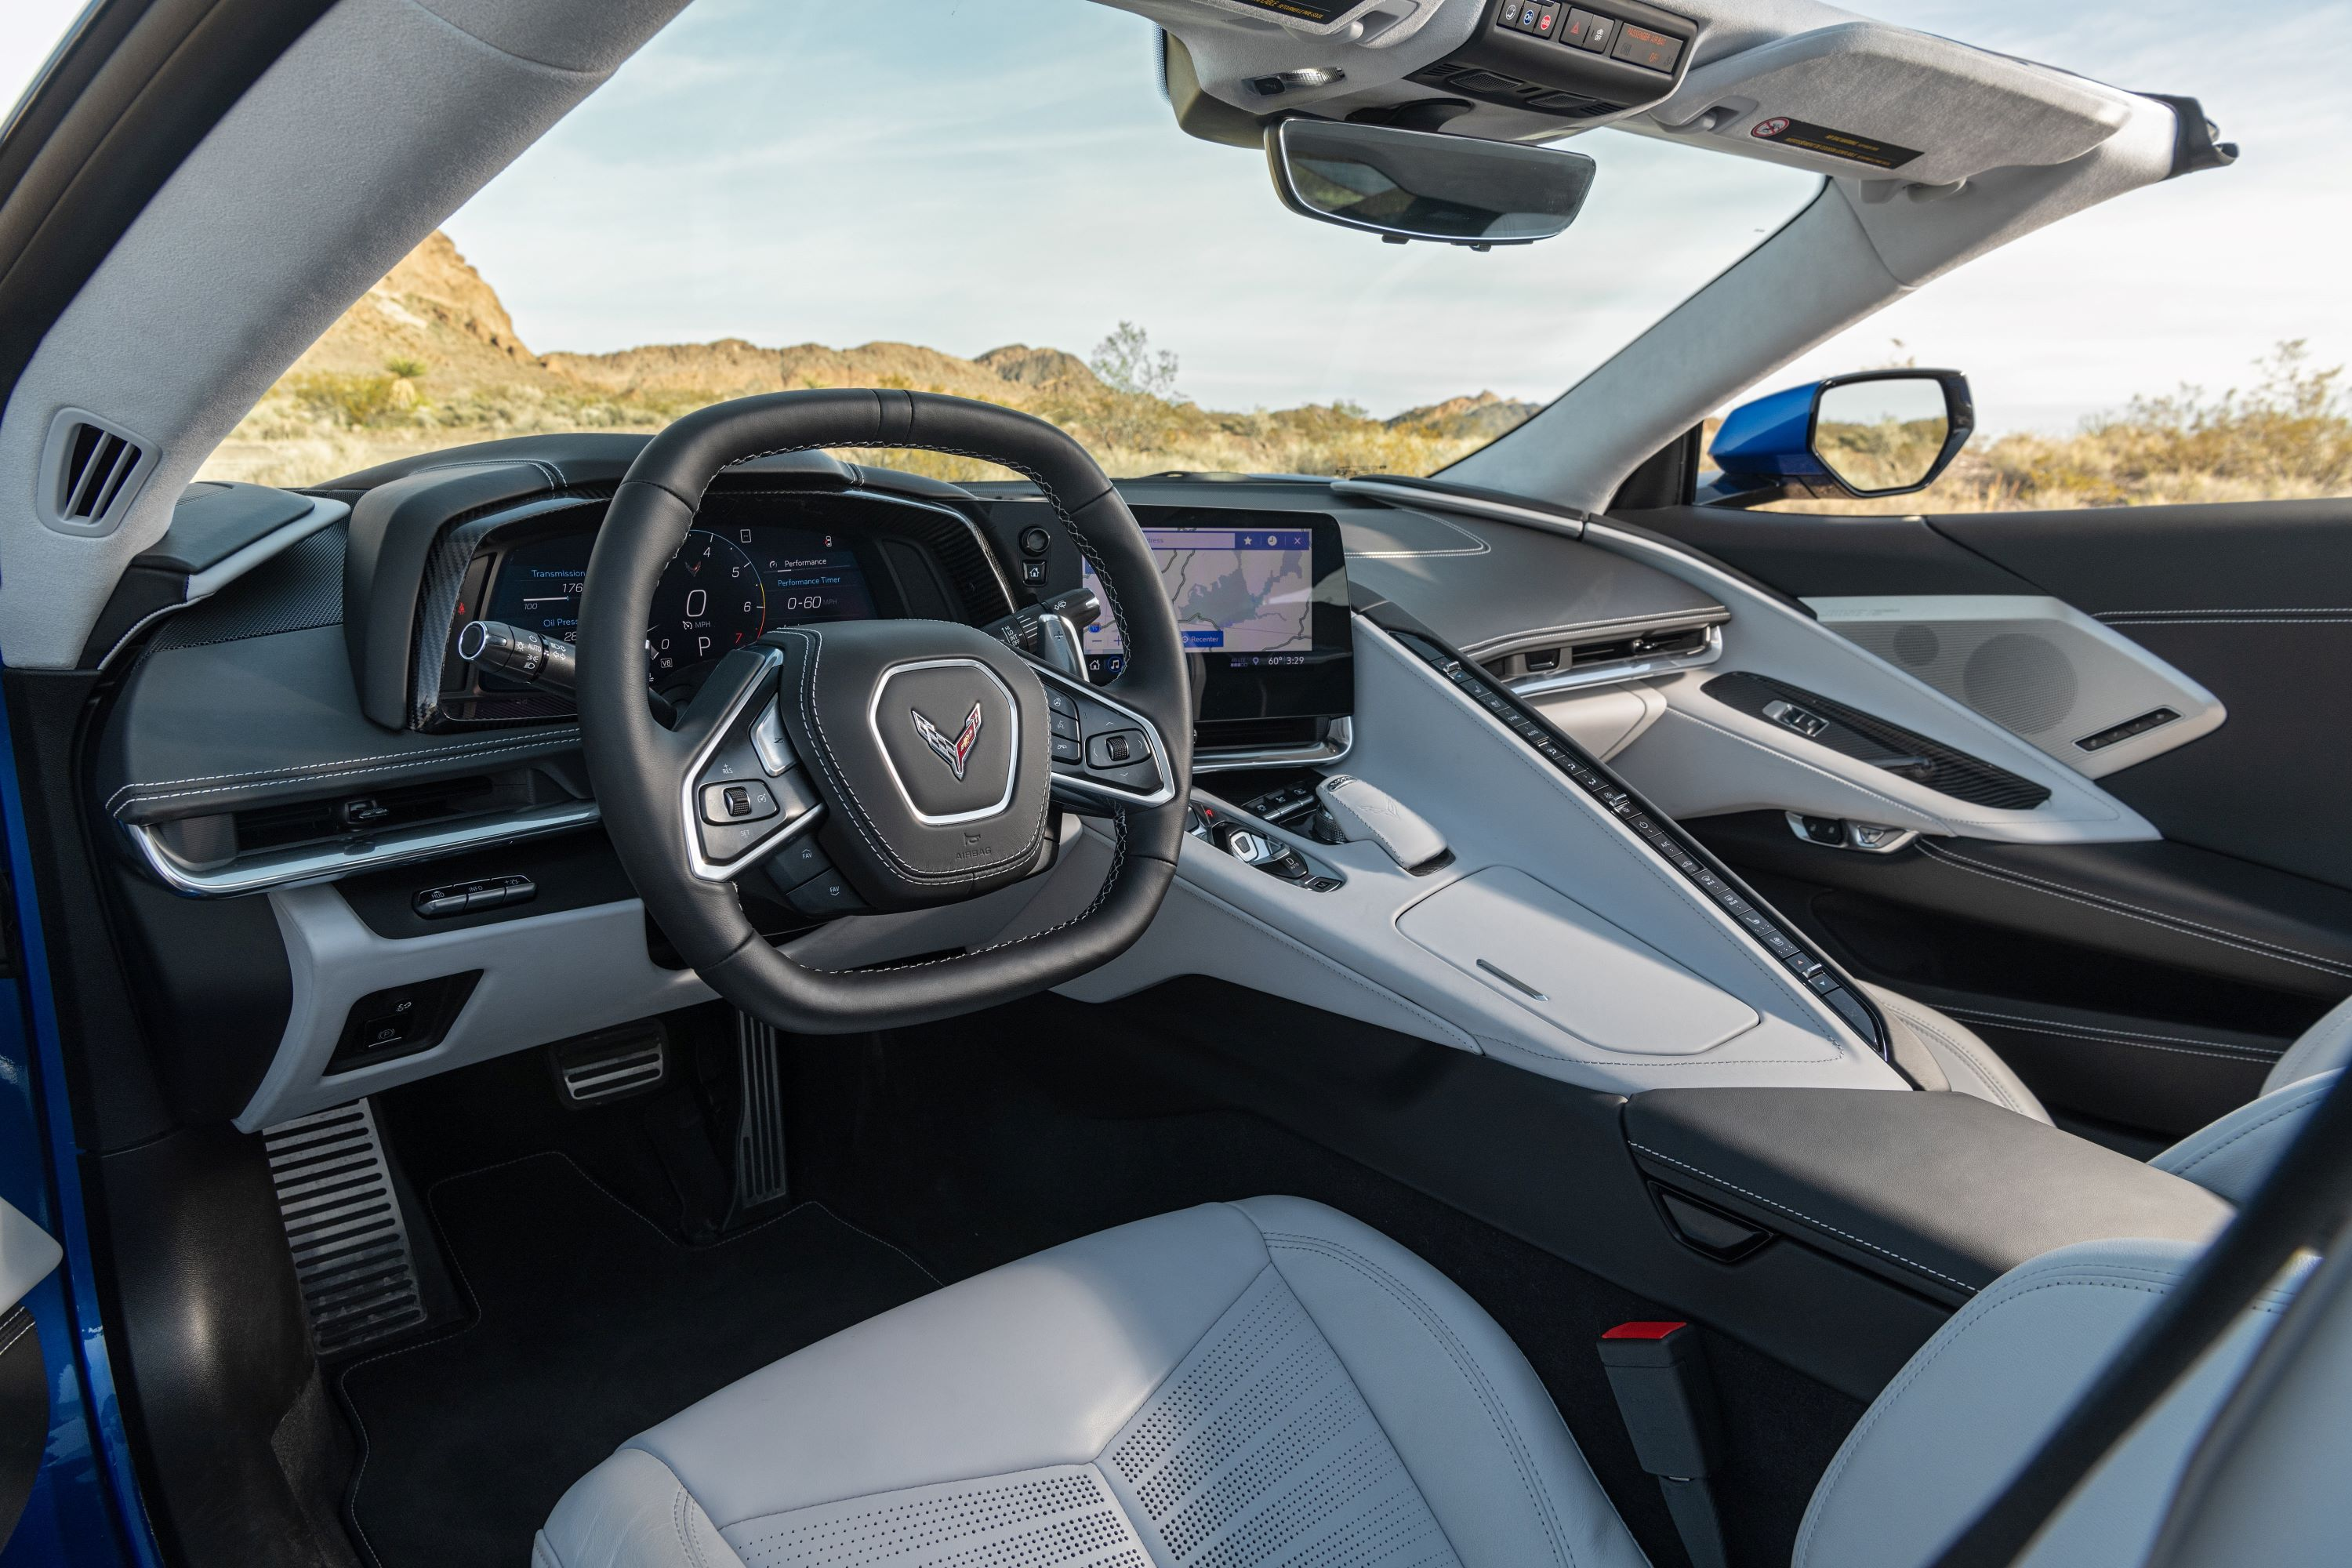 It's what's inside that counts: a closer look at the Chevrolet Corvette Stingray's award-winning interior